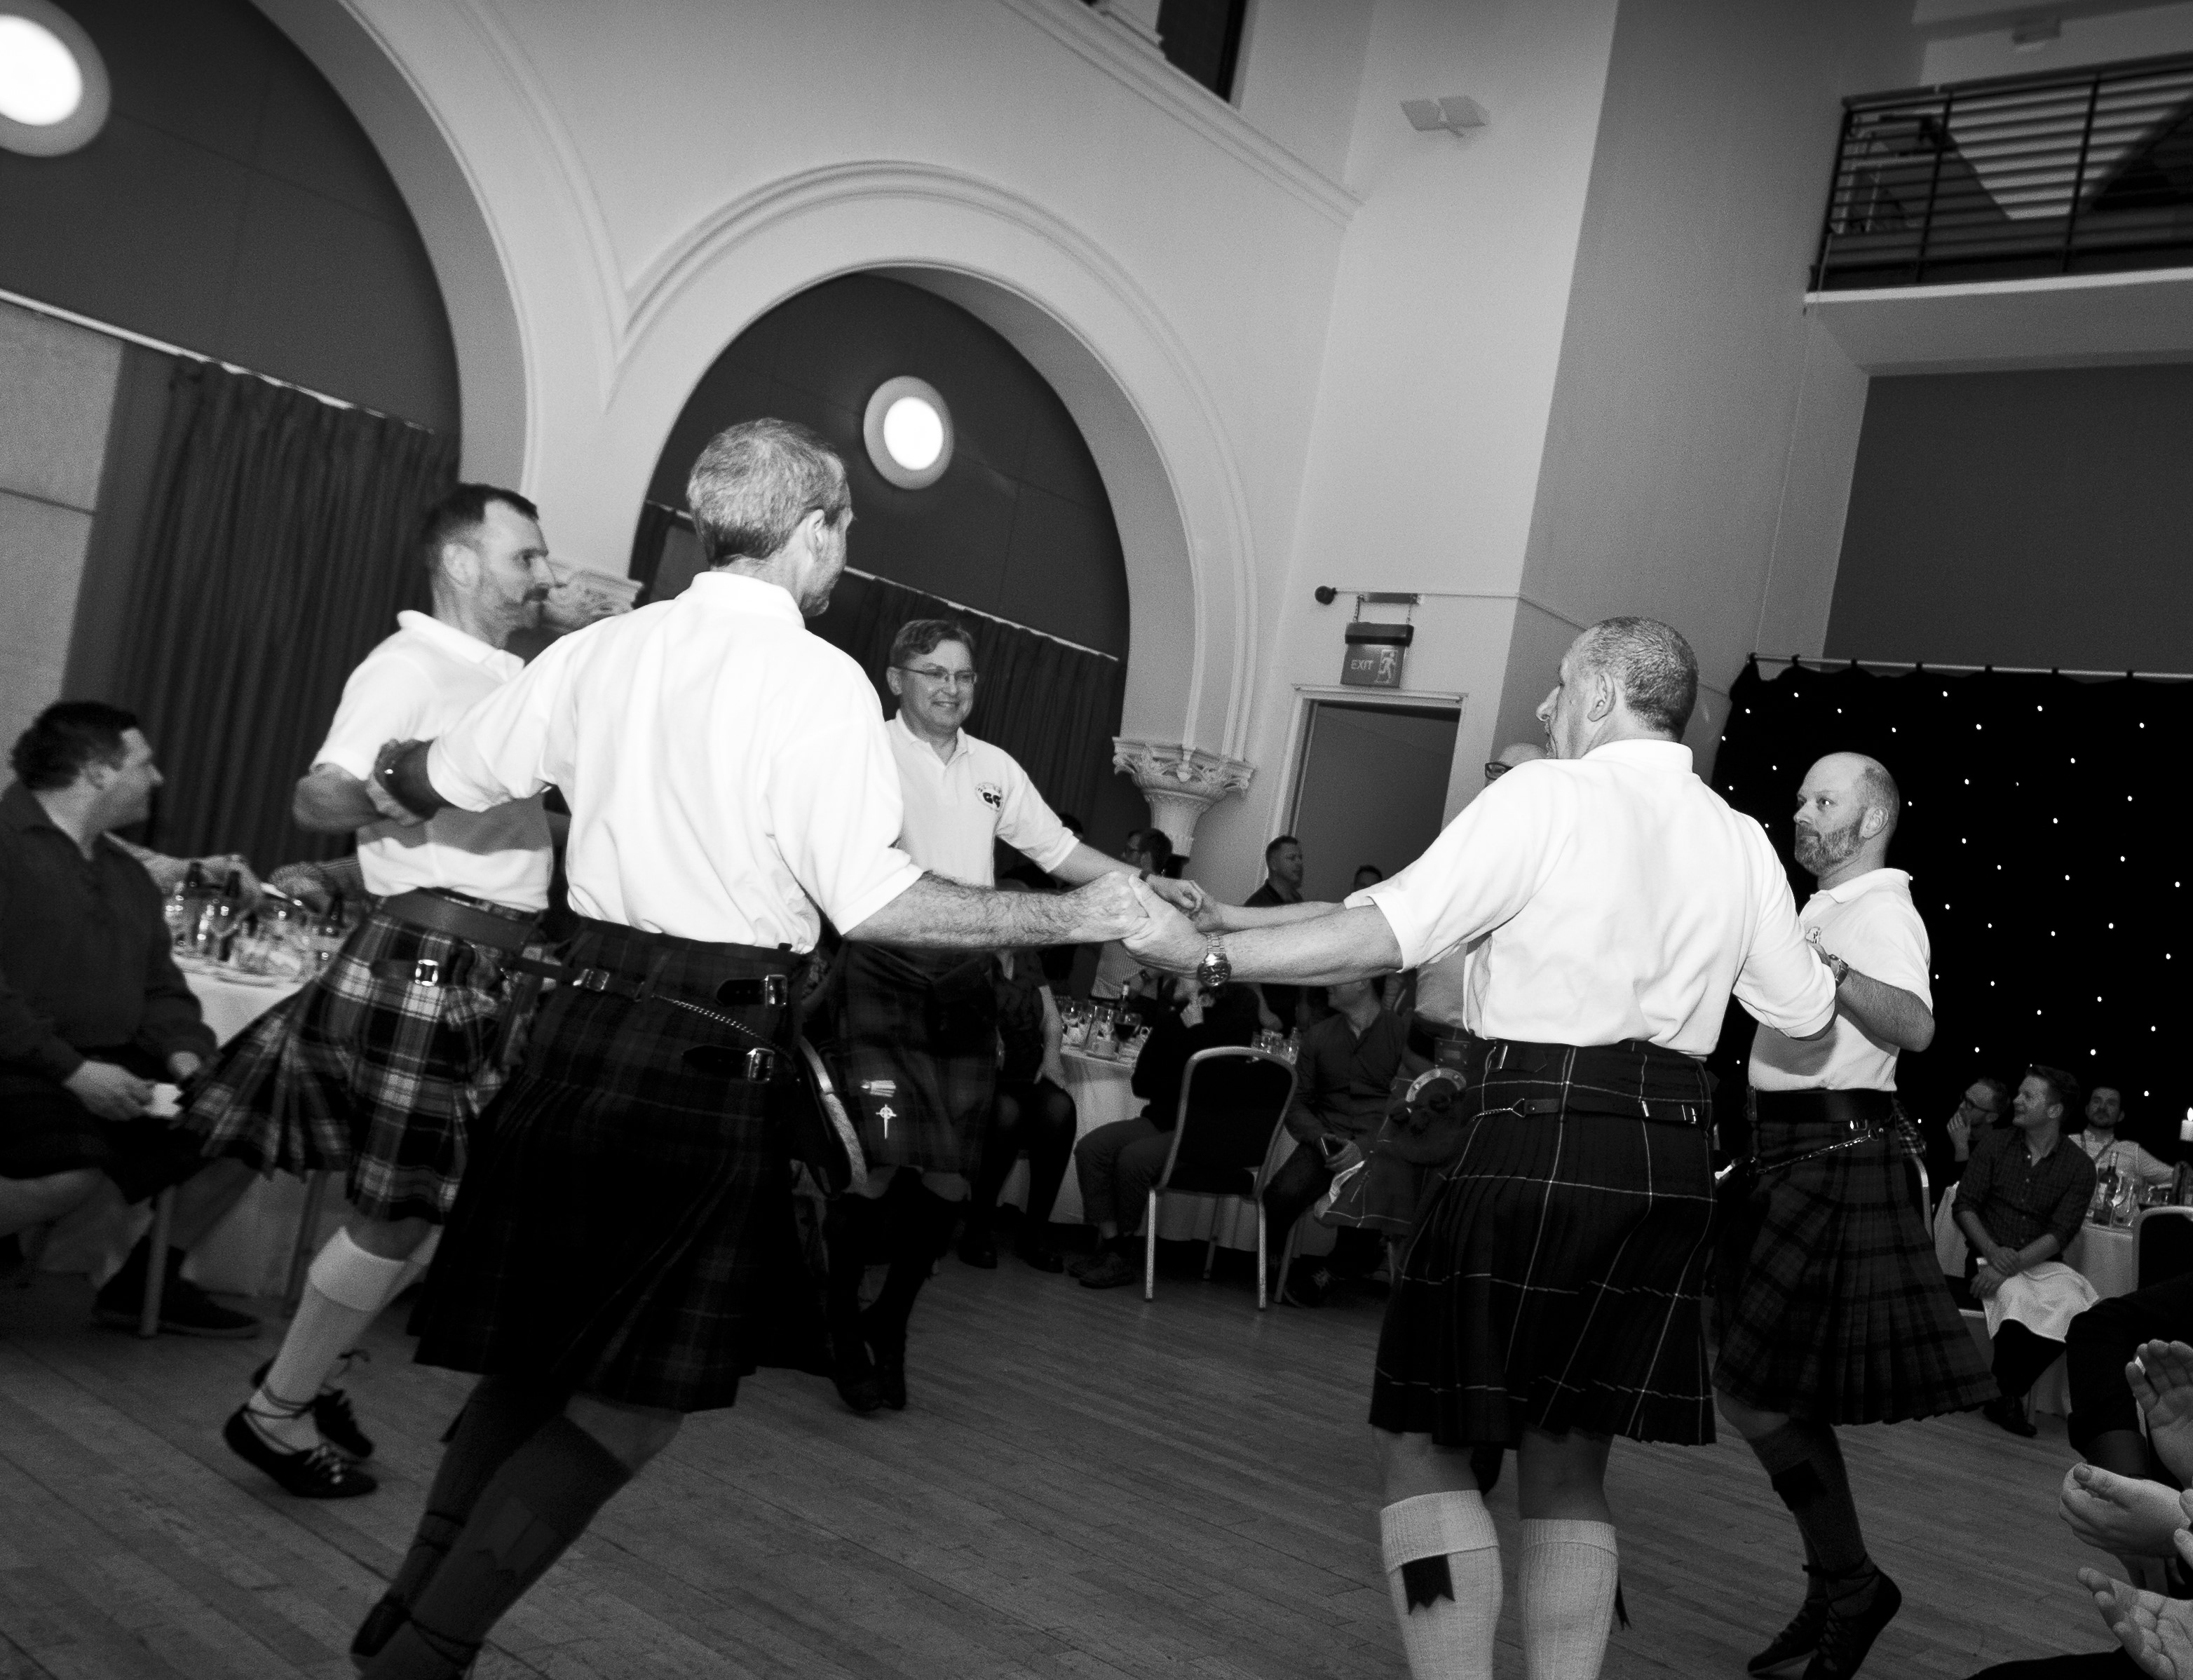 Scottish country dancing in schools